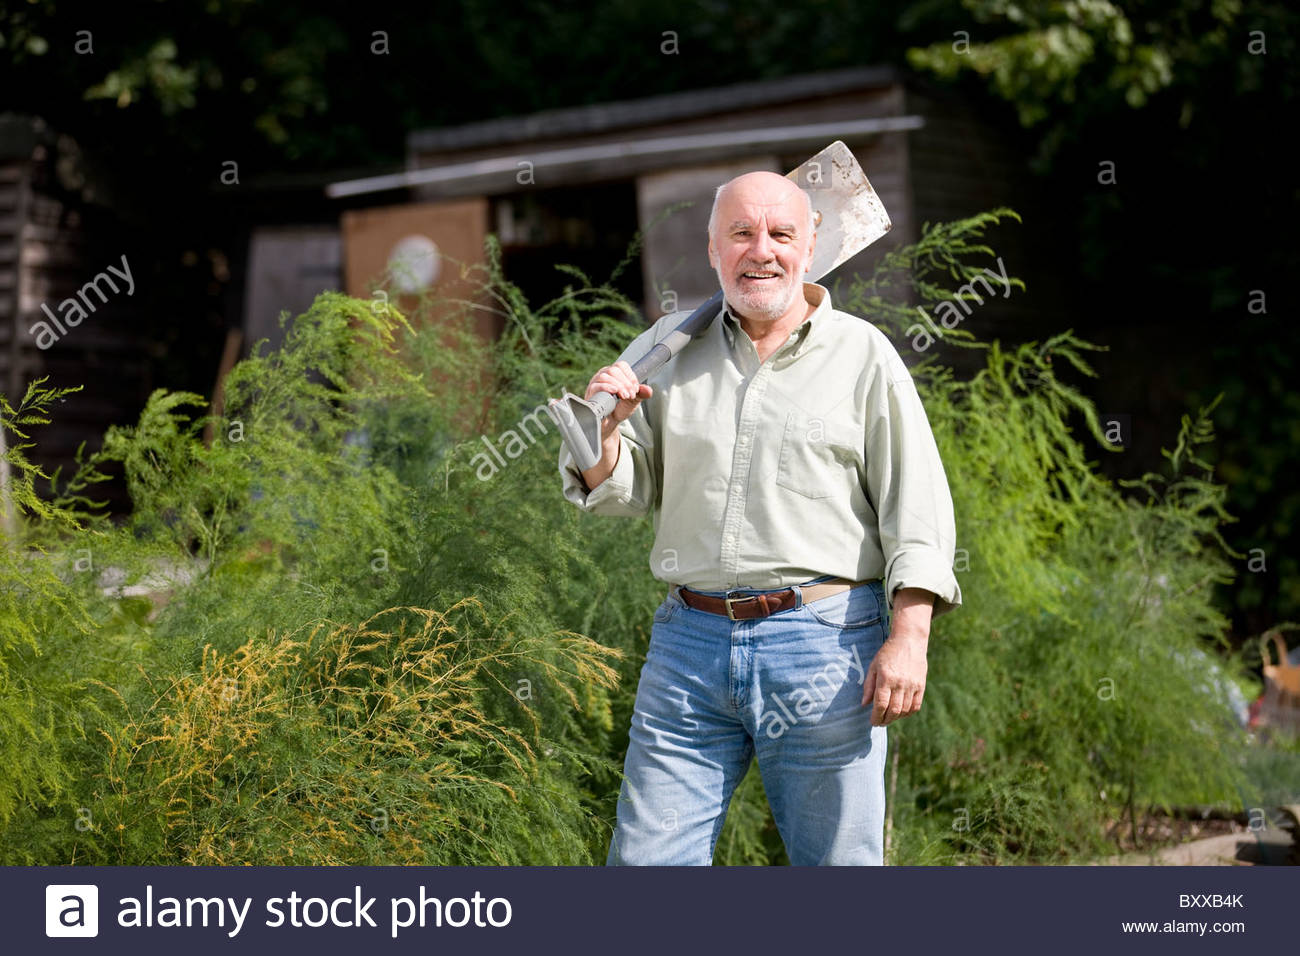 A senior man holding a spade on an allotment - Stock Image